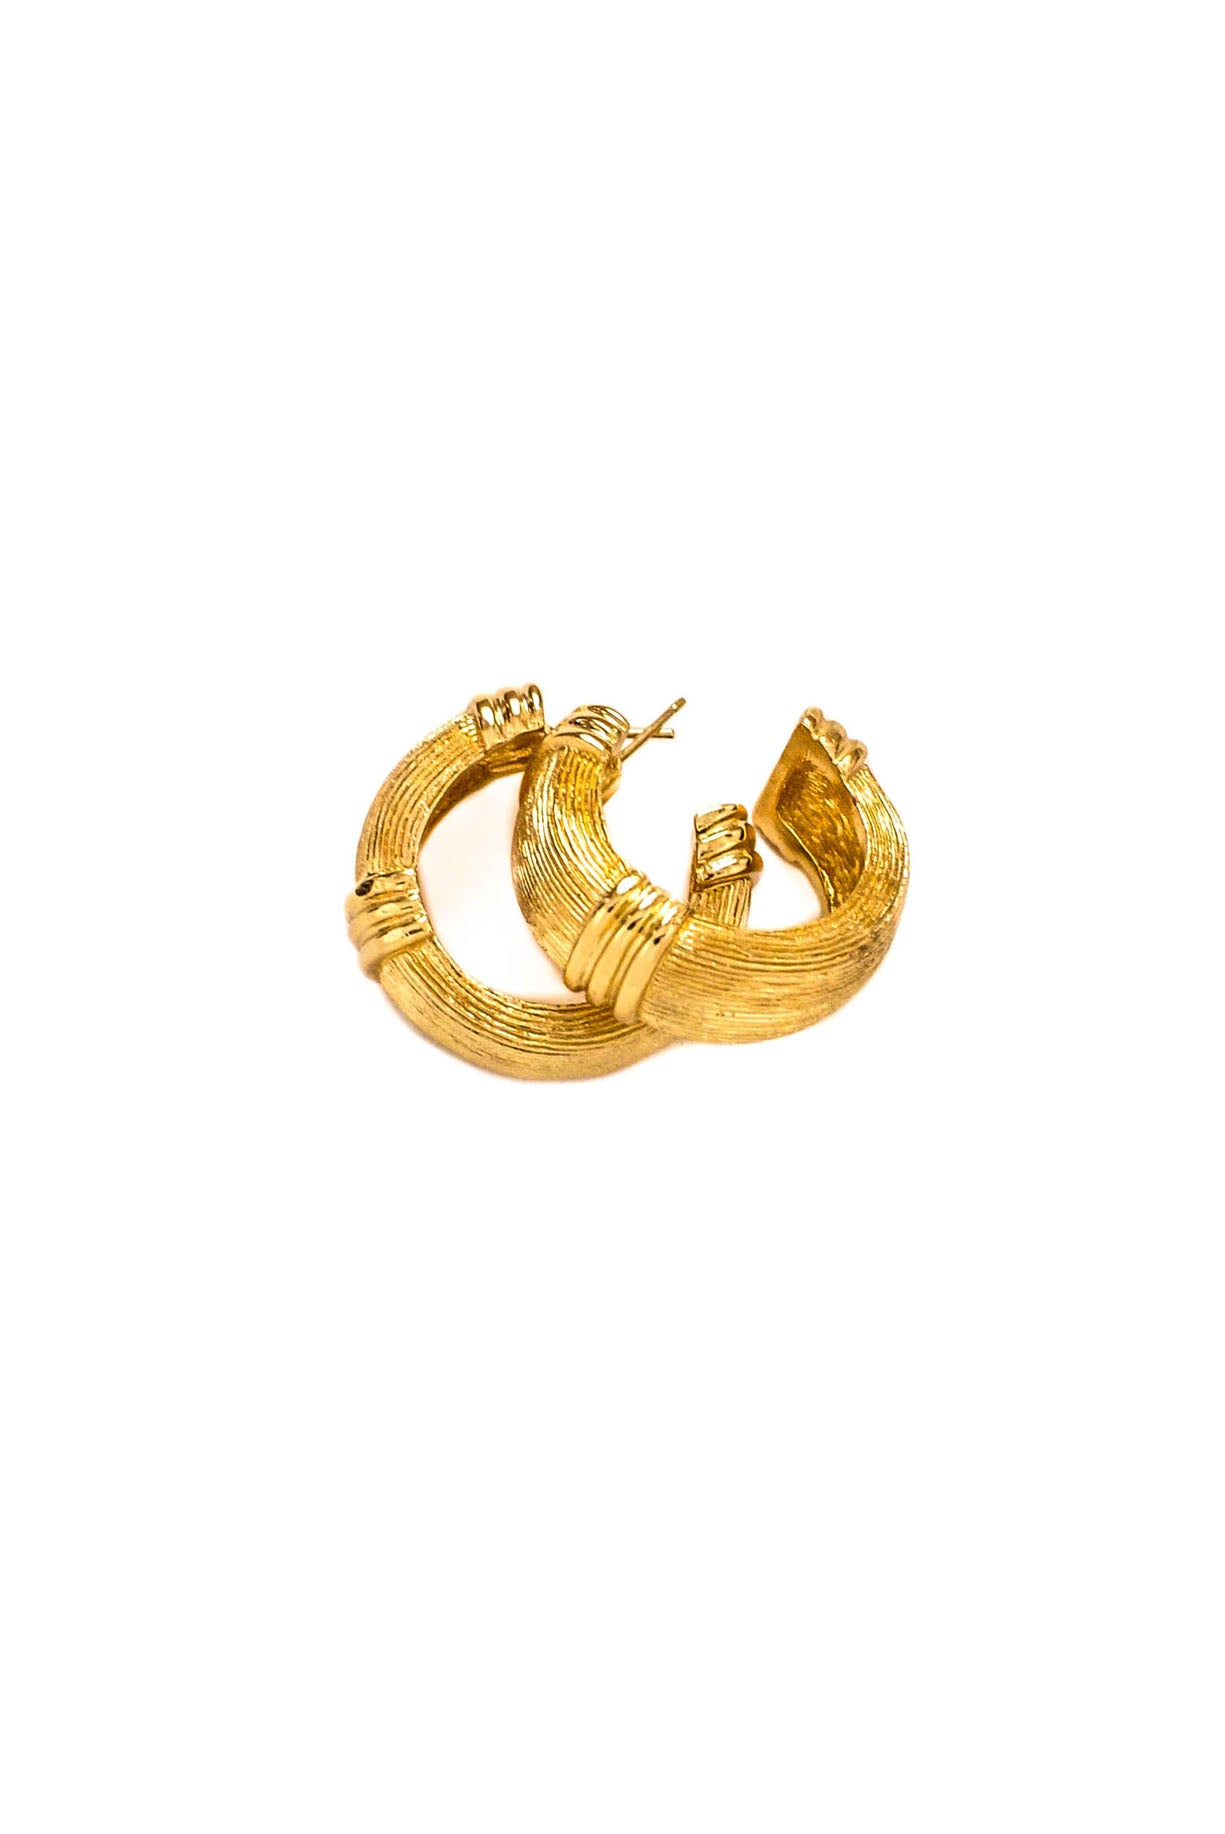 Vintage Christian Dior Textured Pierced Hoop Earrings from Sweet and Spark